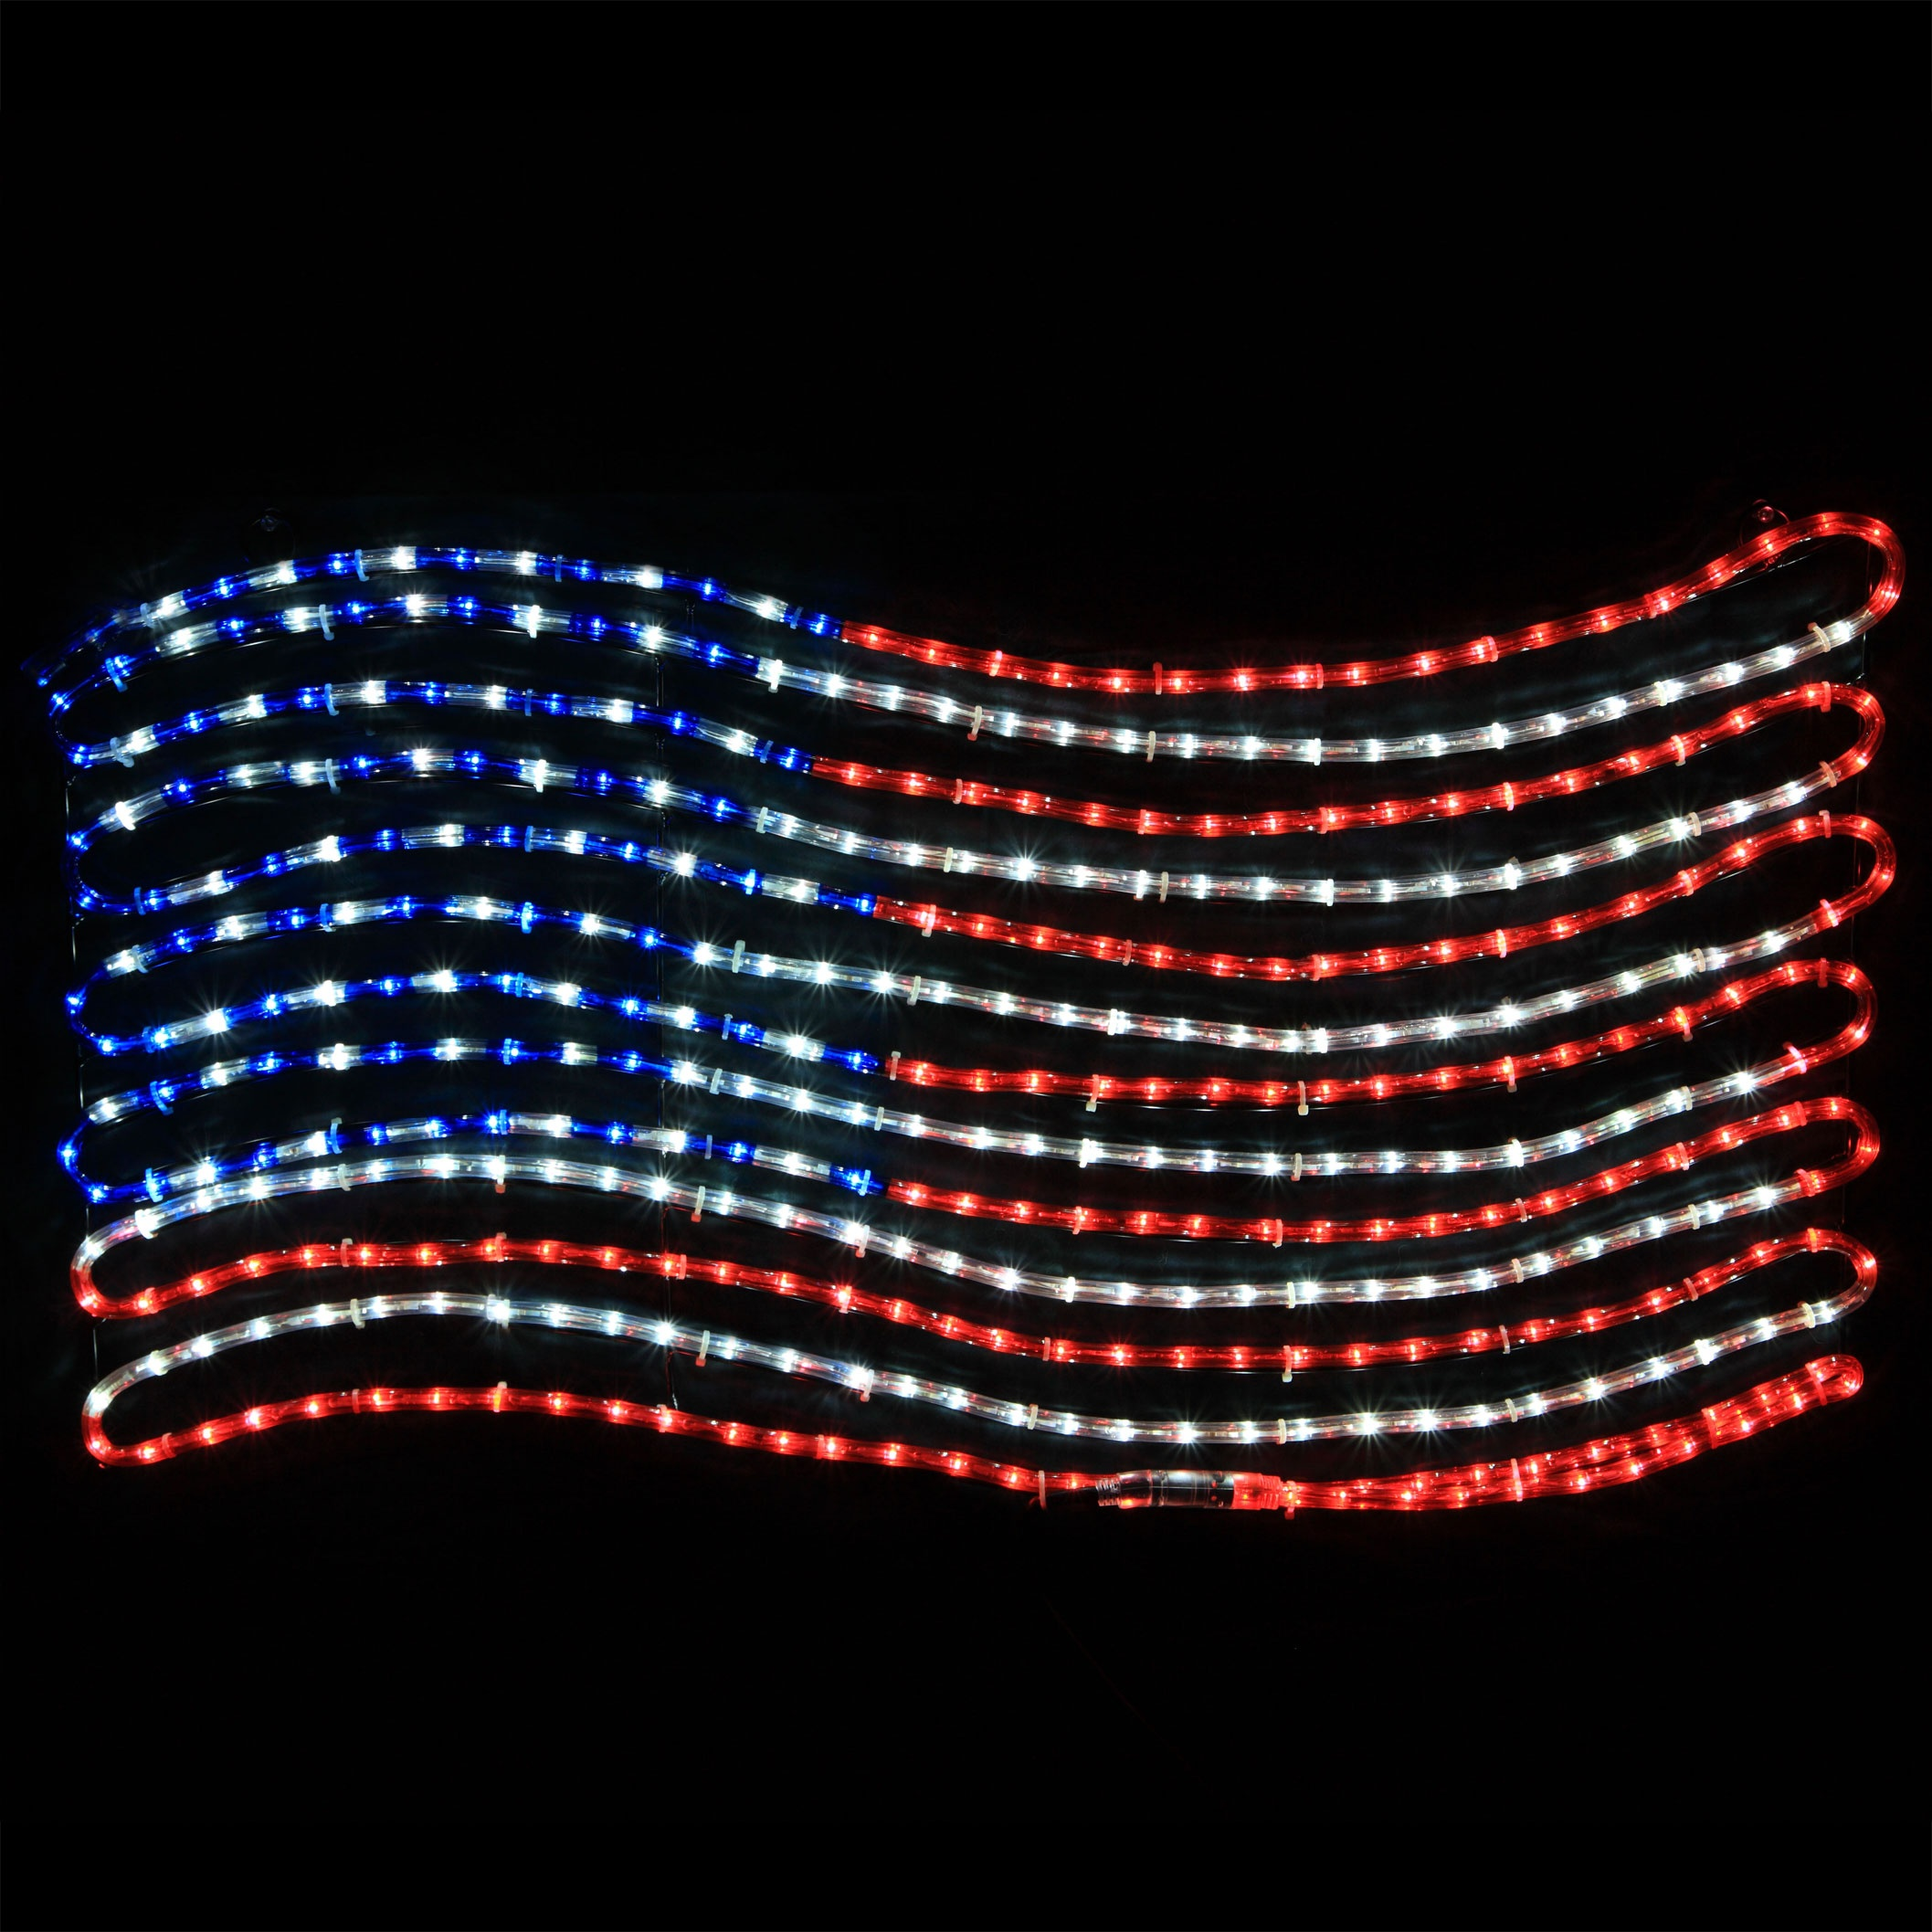 Lighted Outdoor Christmas Tree picture on LED Rope Light Patriotic Flag Rope Light Decorations  21939  62 with Lighted Outdoor Christmas Tree, Outdoor Lighting ideas c5f310321fc01f6e2f153dfb7443e435